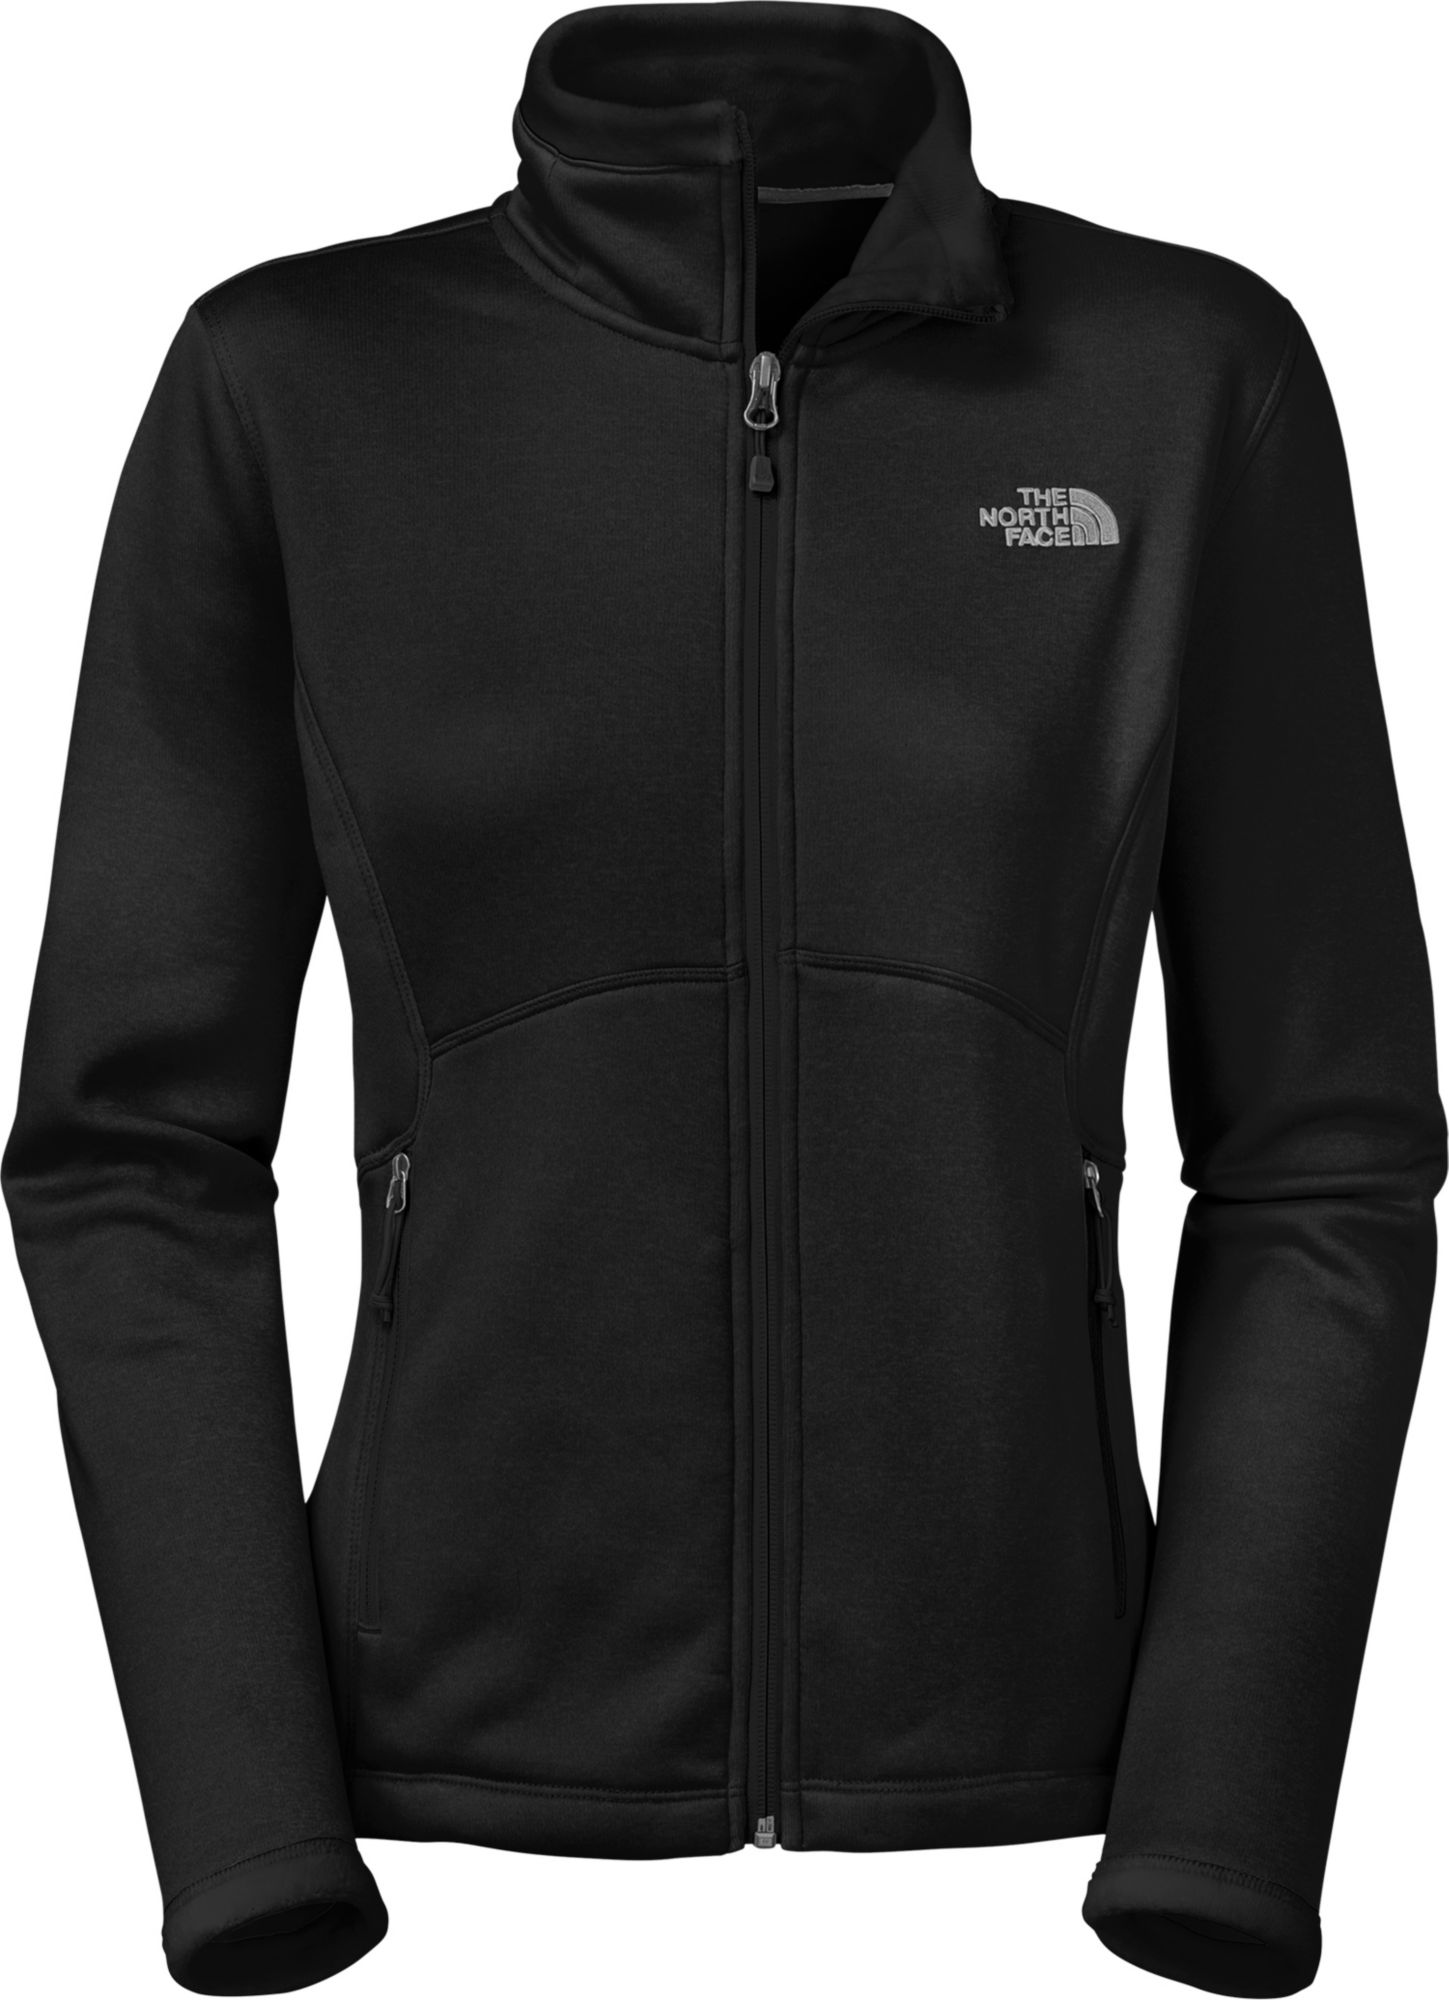 Black Fleece Jackets | DICK'S Sporting Goods